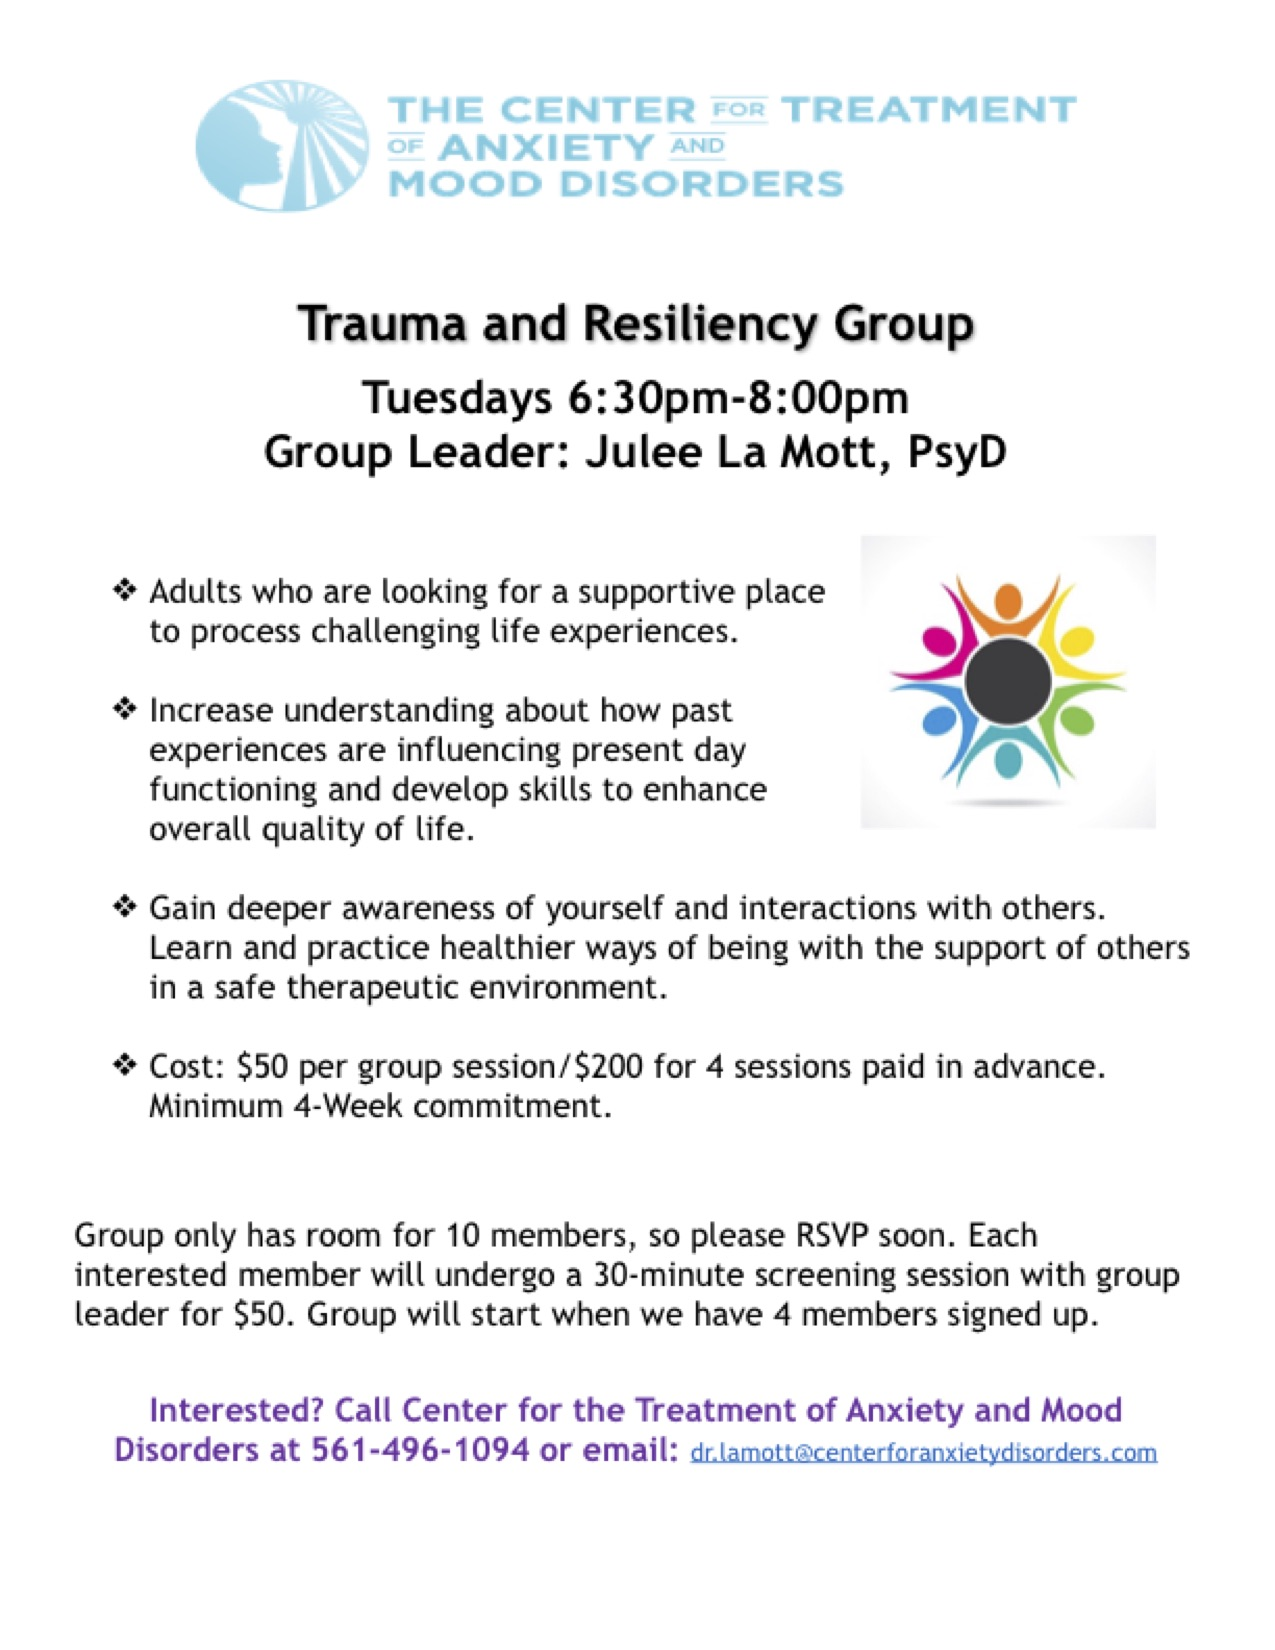 Trauma and Resiliency Group